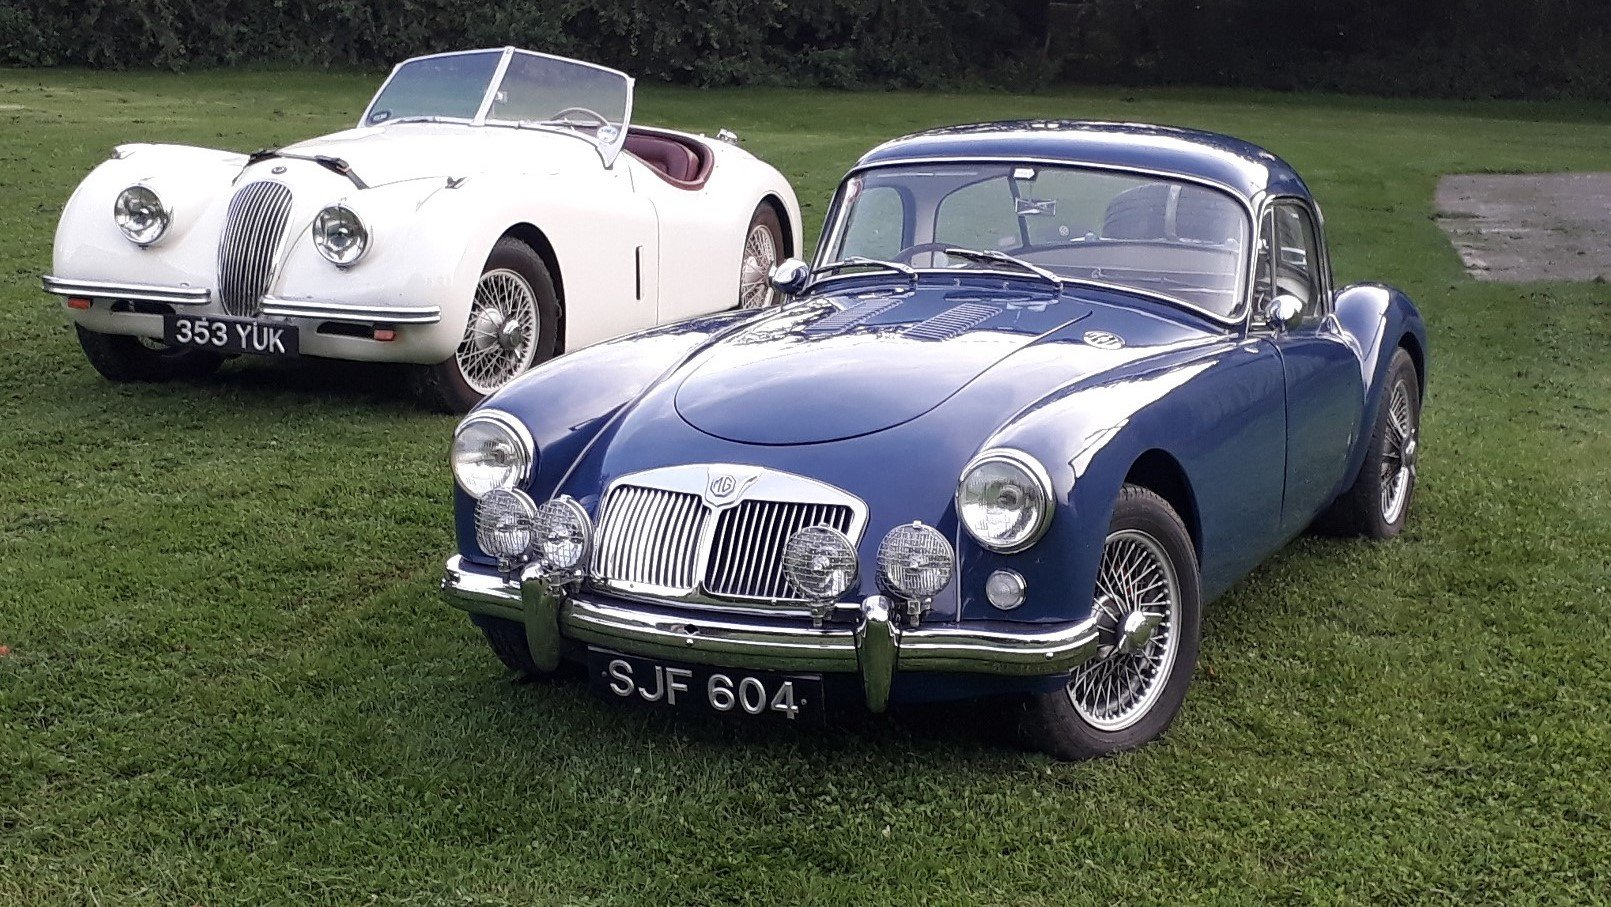 MG A MGA Coupe FHC 1798cc 1958 7k Miles Conversion Special For Sale (picture 1 of 6)